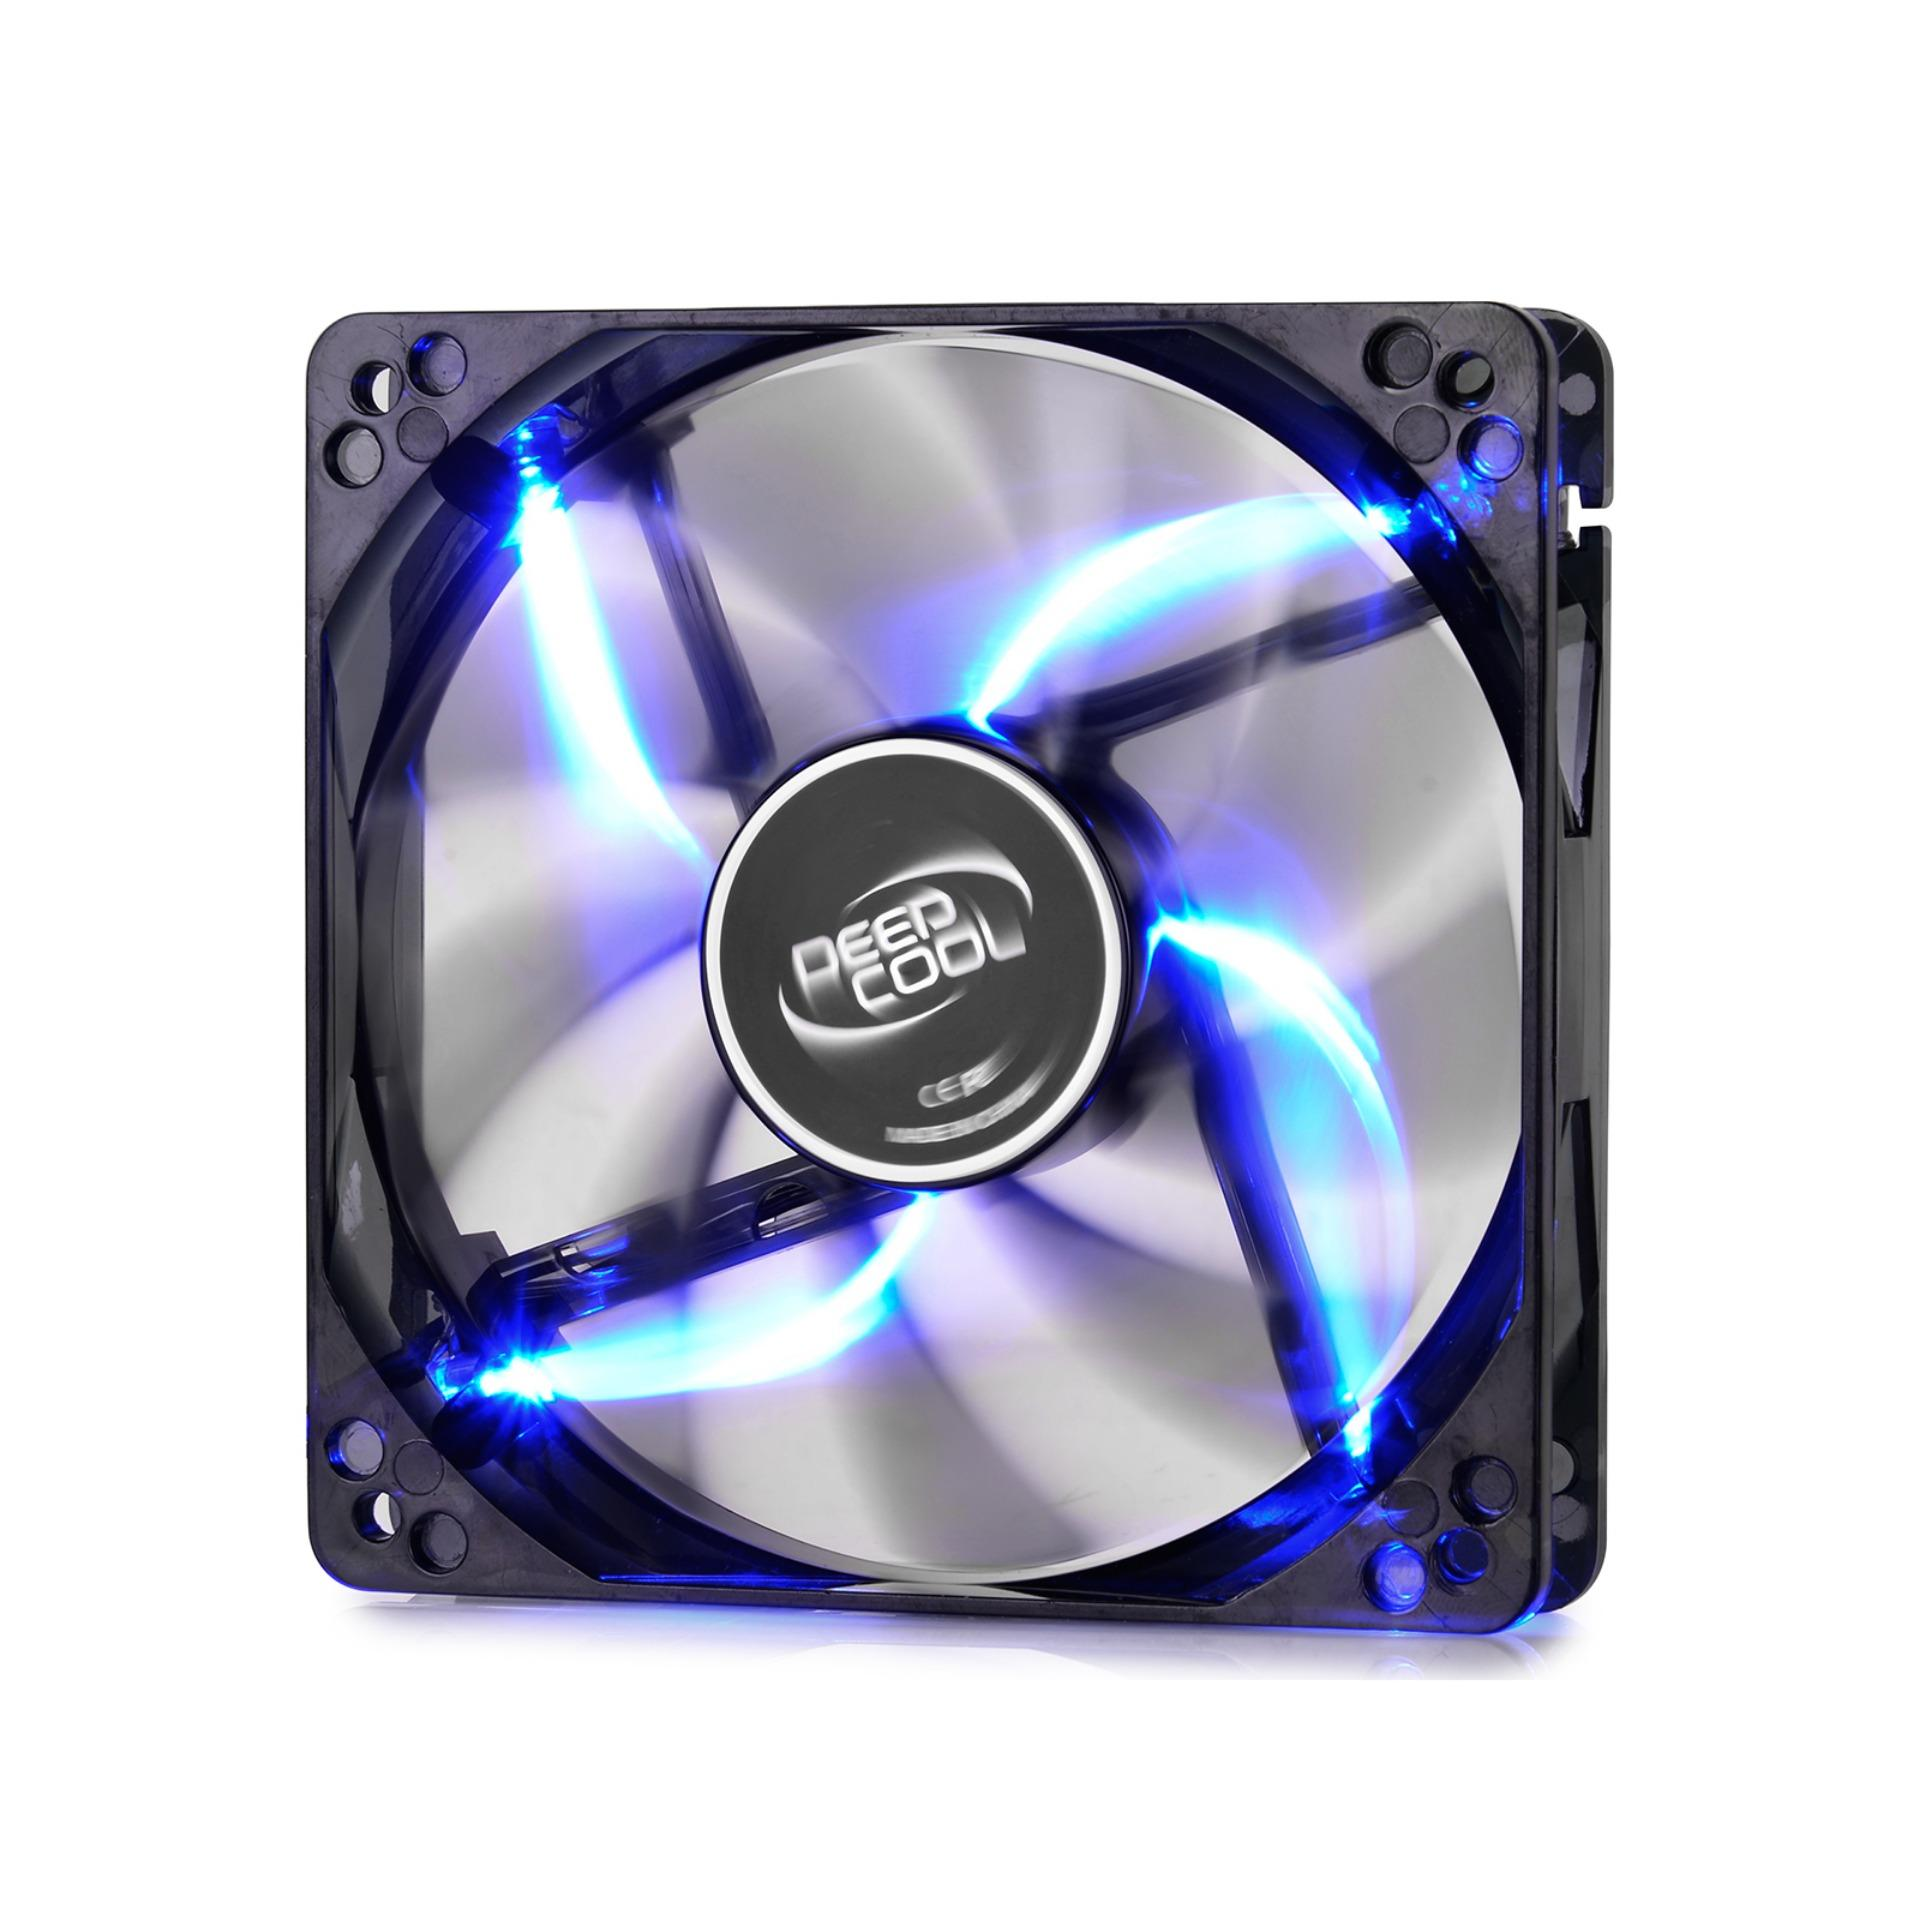 Deepcool Wind Blade 120mm Blue Led Fan By Easypc.